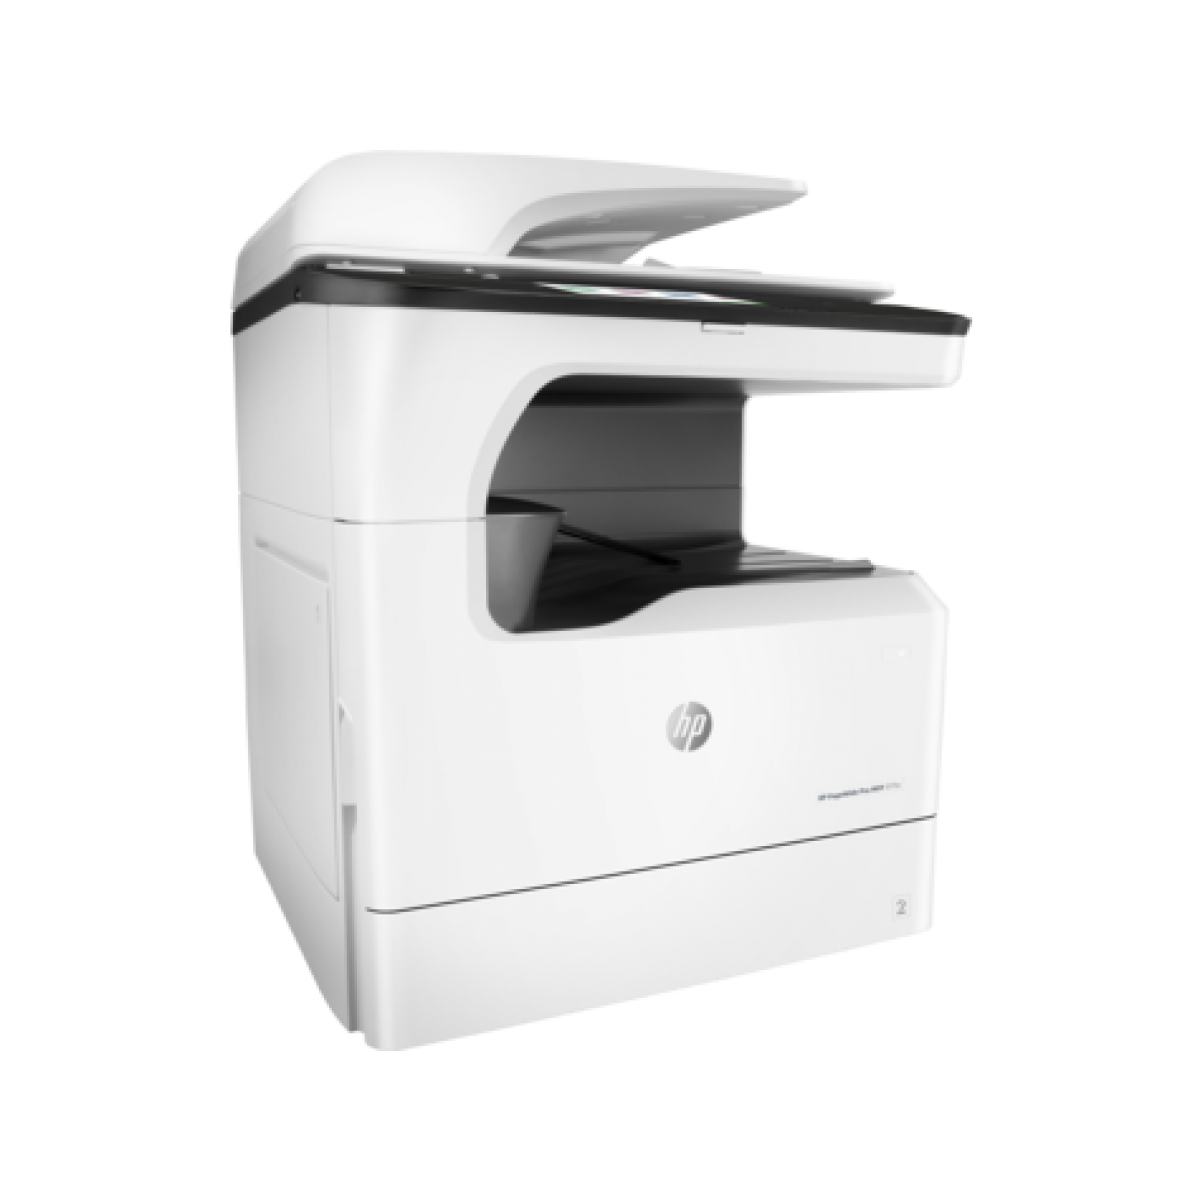 hp-pagewide-pro-mfp-777z-printer-y3z55b-b2e